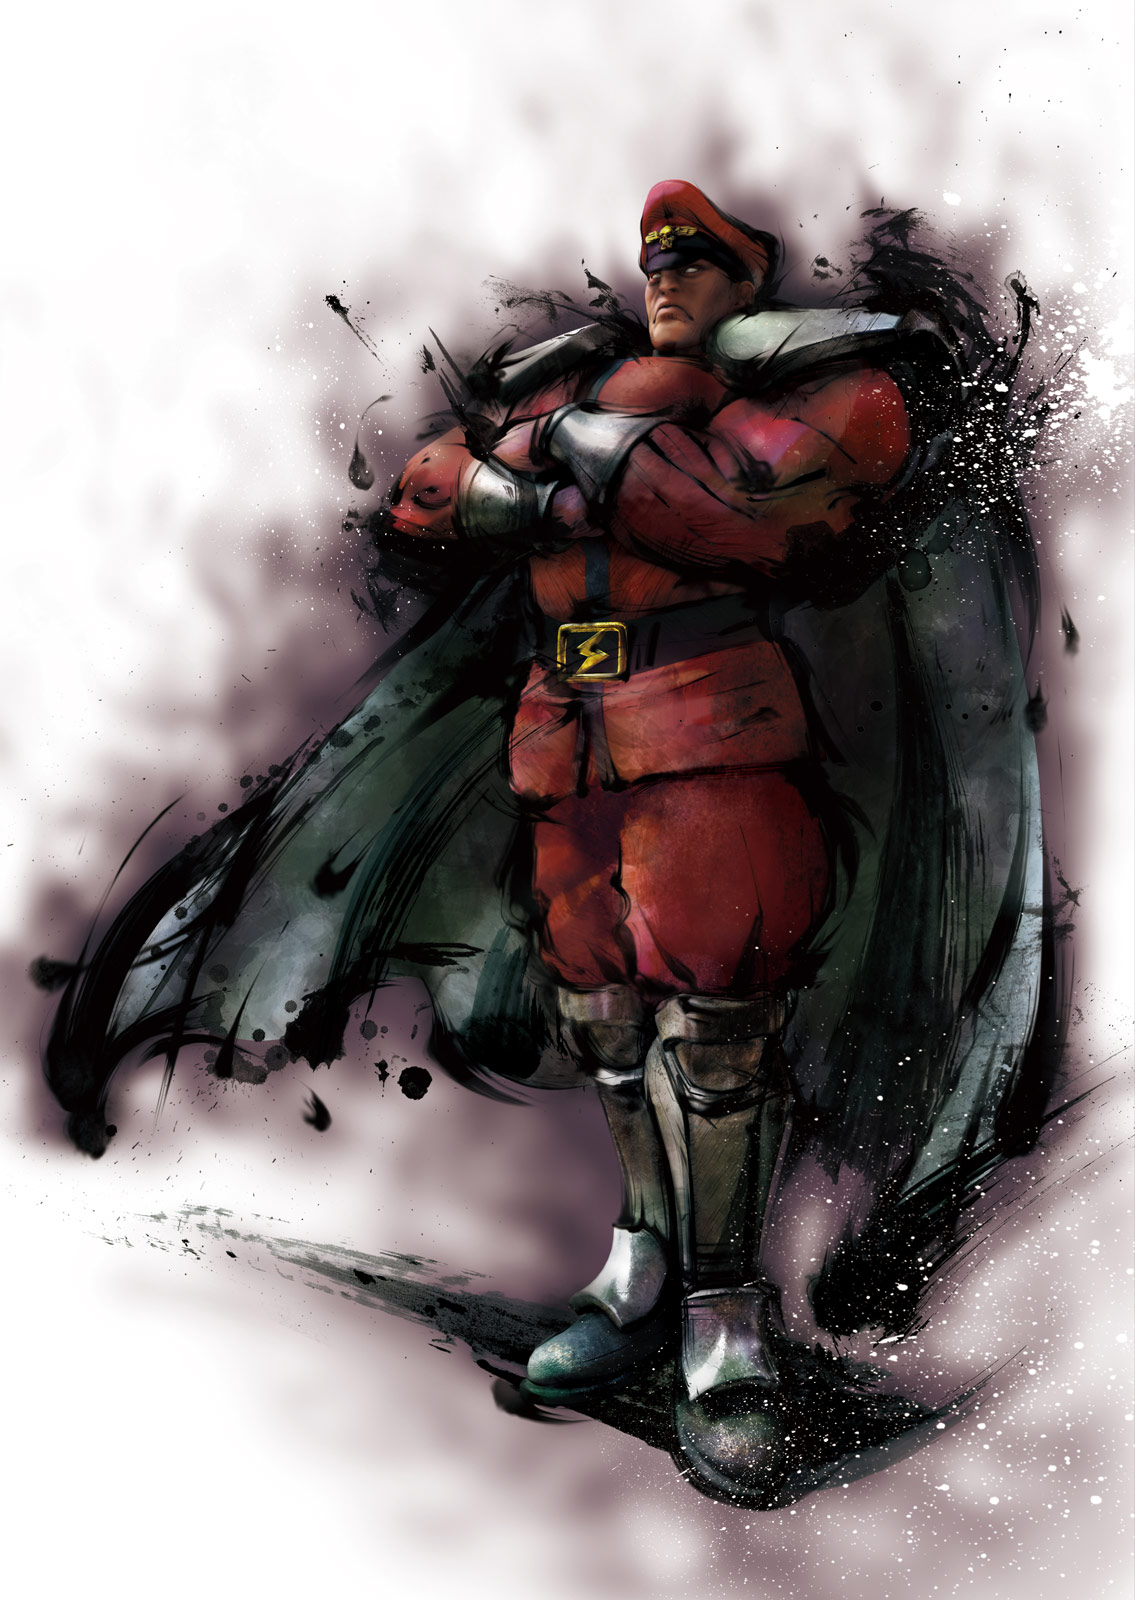 M. Bison artwork #1, Street Fighter 4: High resolution